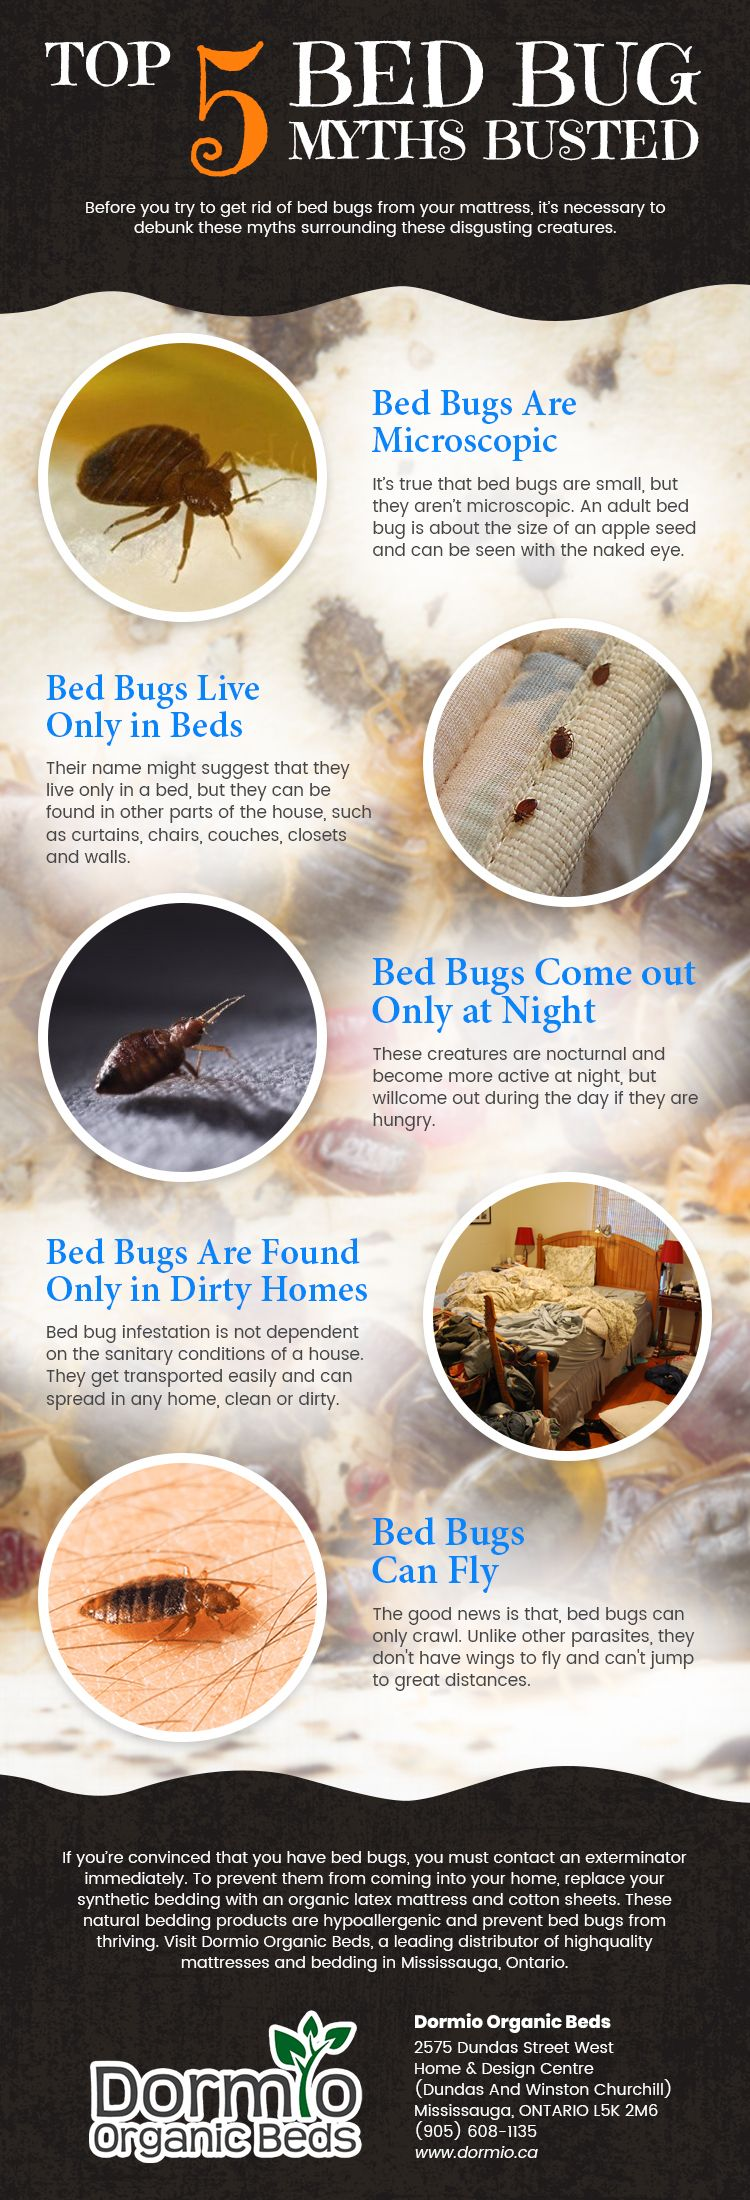 Top 5 Bed Bugs Myths Busted